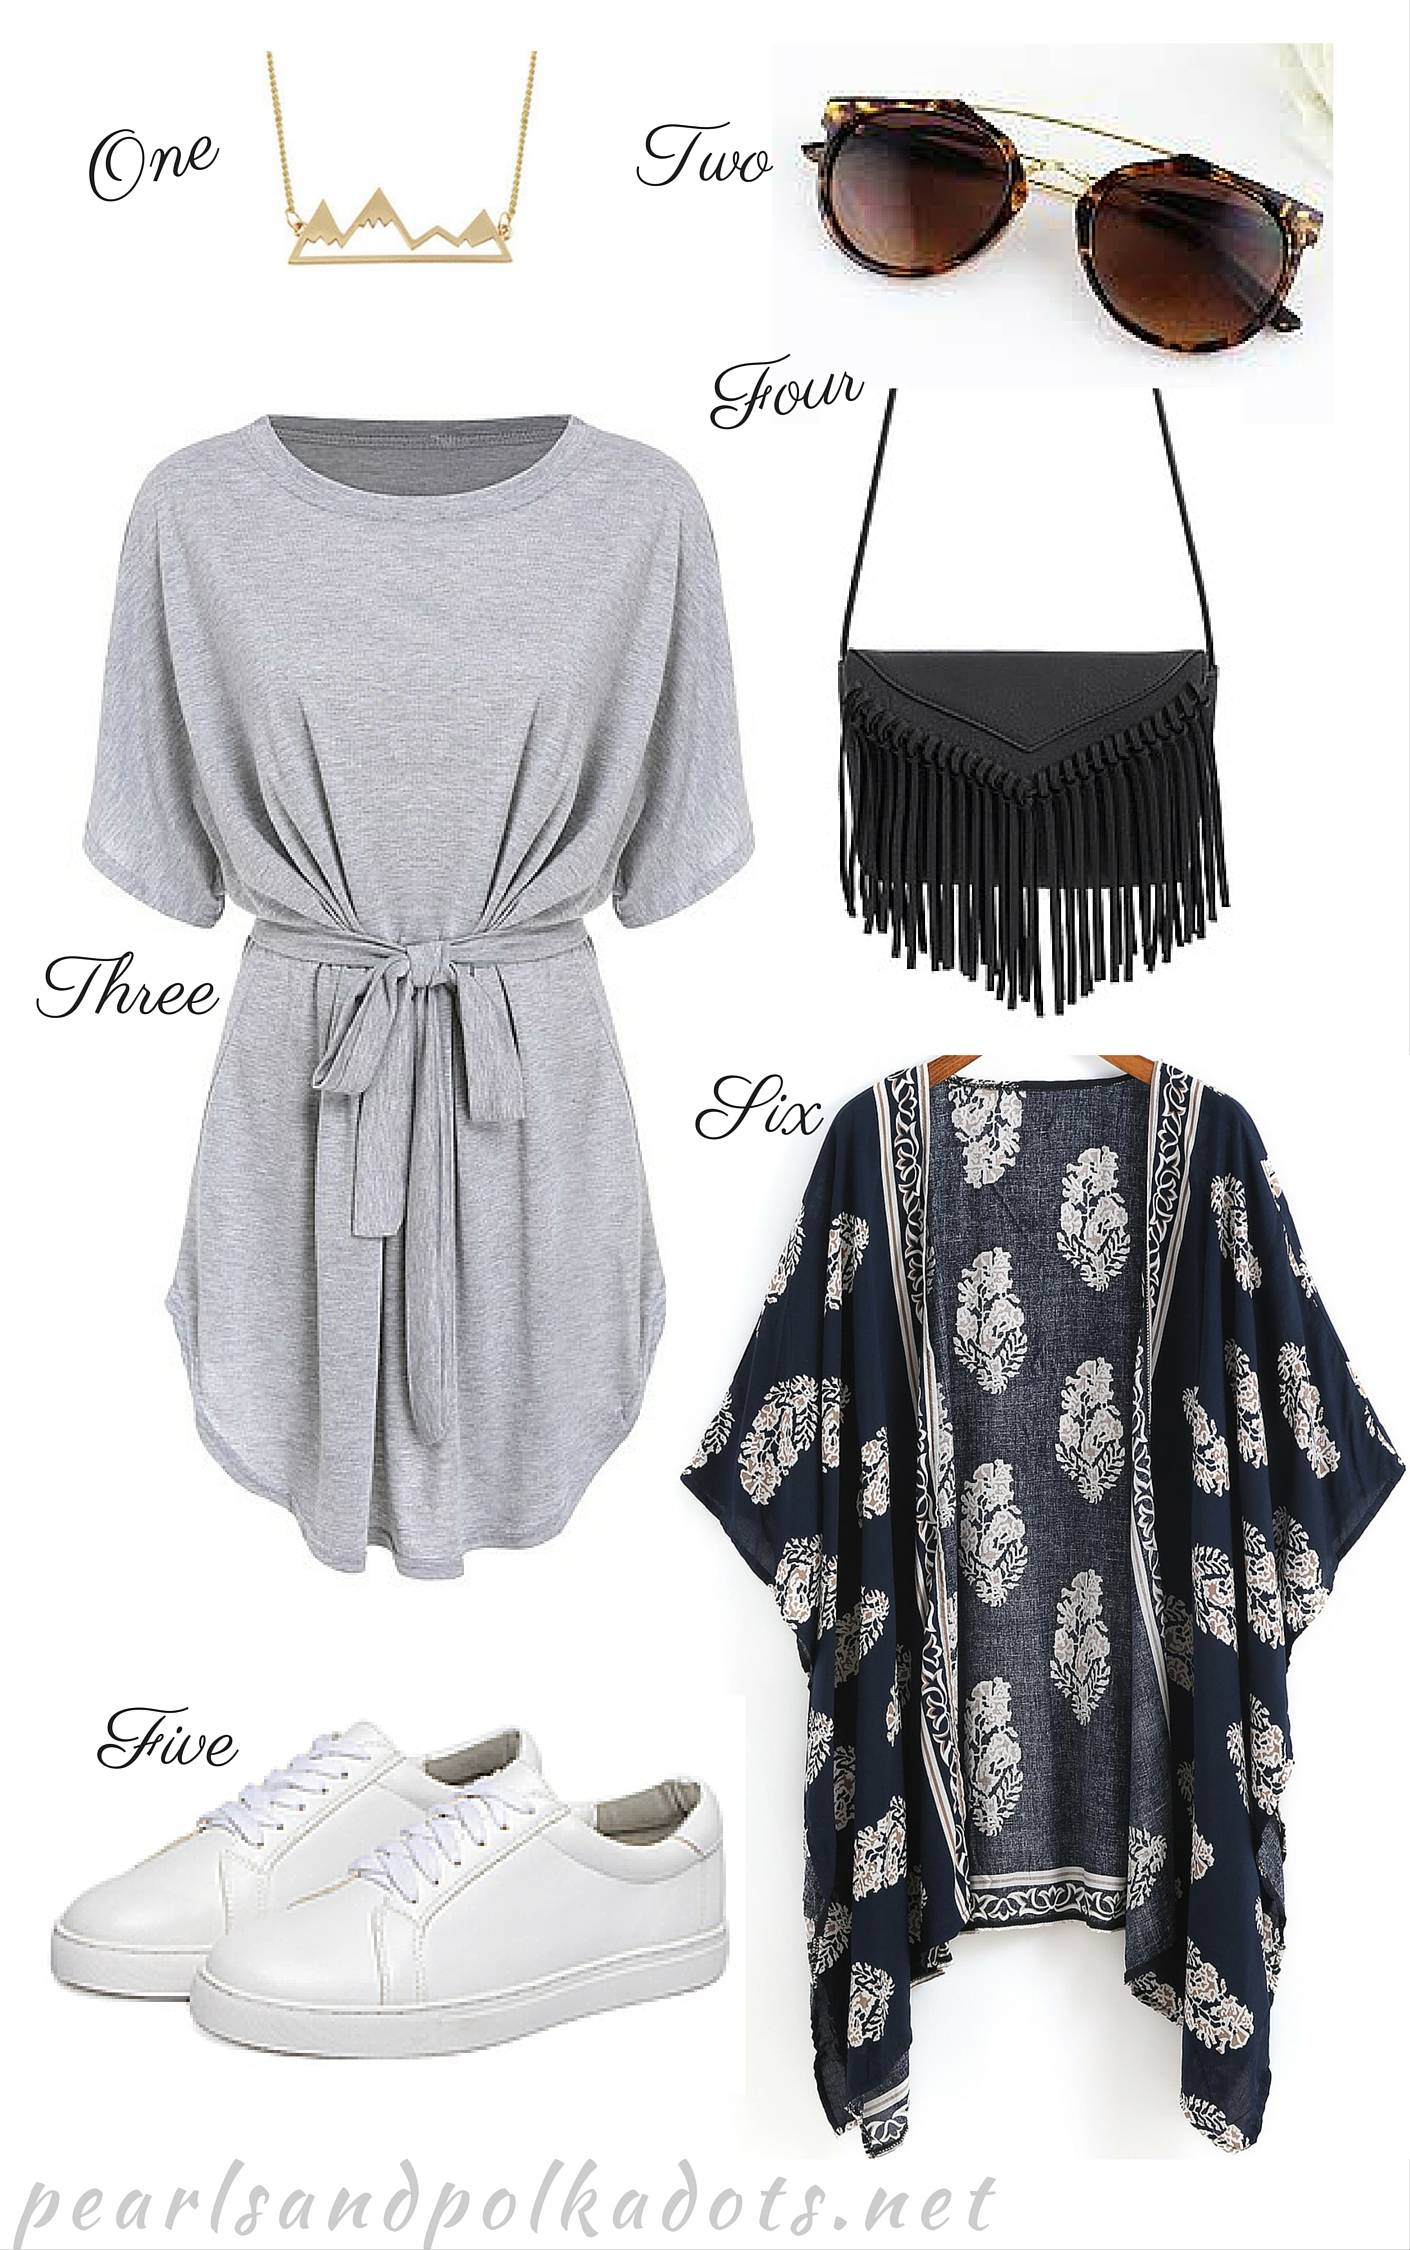 Spring Picks with Romwe - Pearls and Polkadots